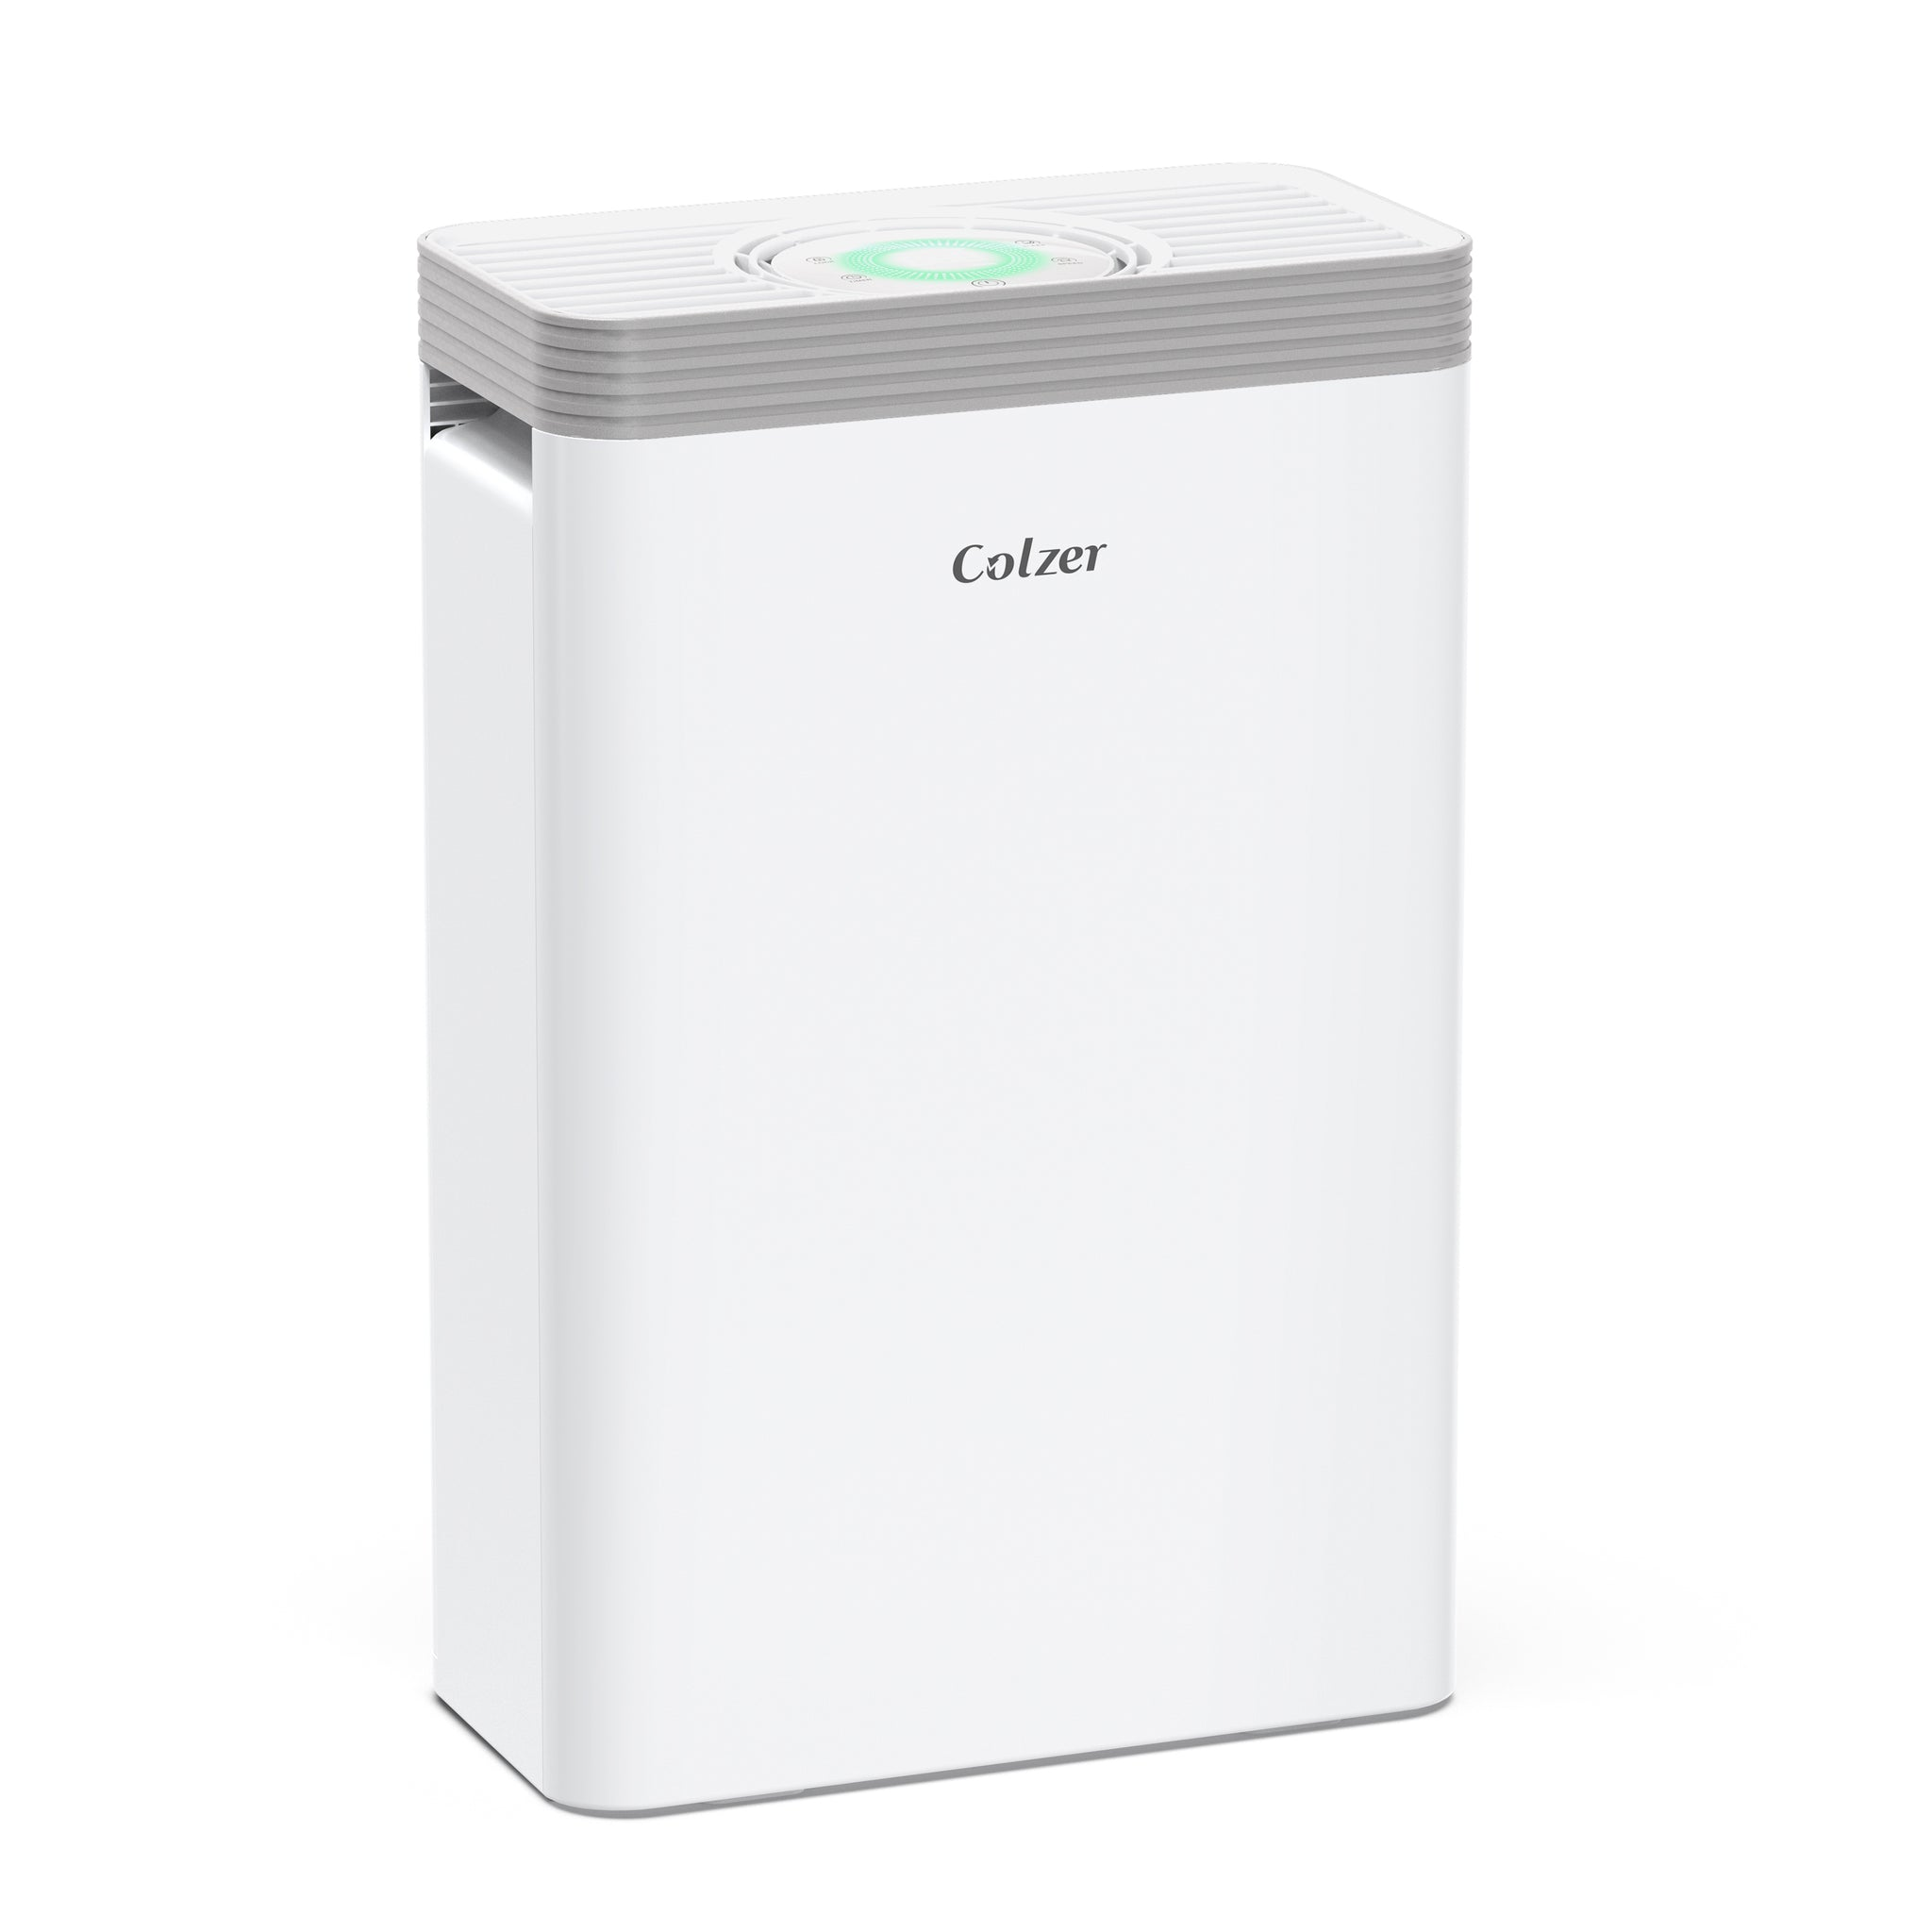 Air Purifier with True HEPA Air Filter for Home - Colzer